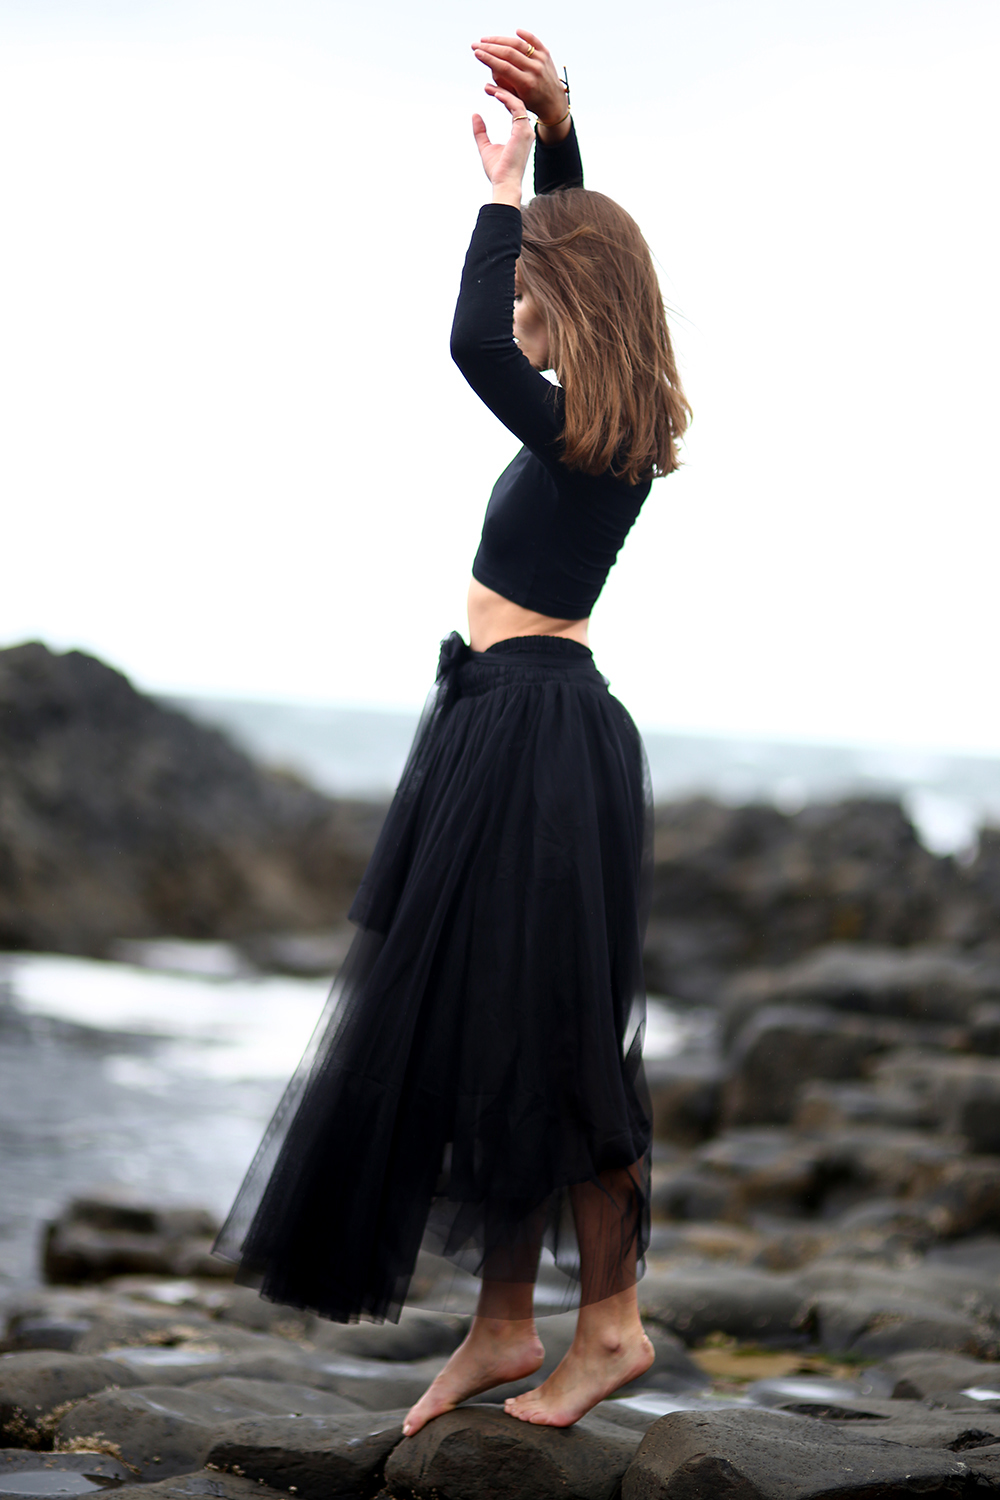 Anouska Proetta Brandon is wearing all black crop top and tulle skirt